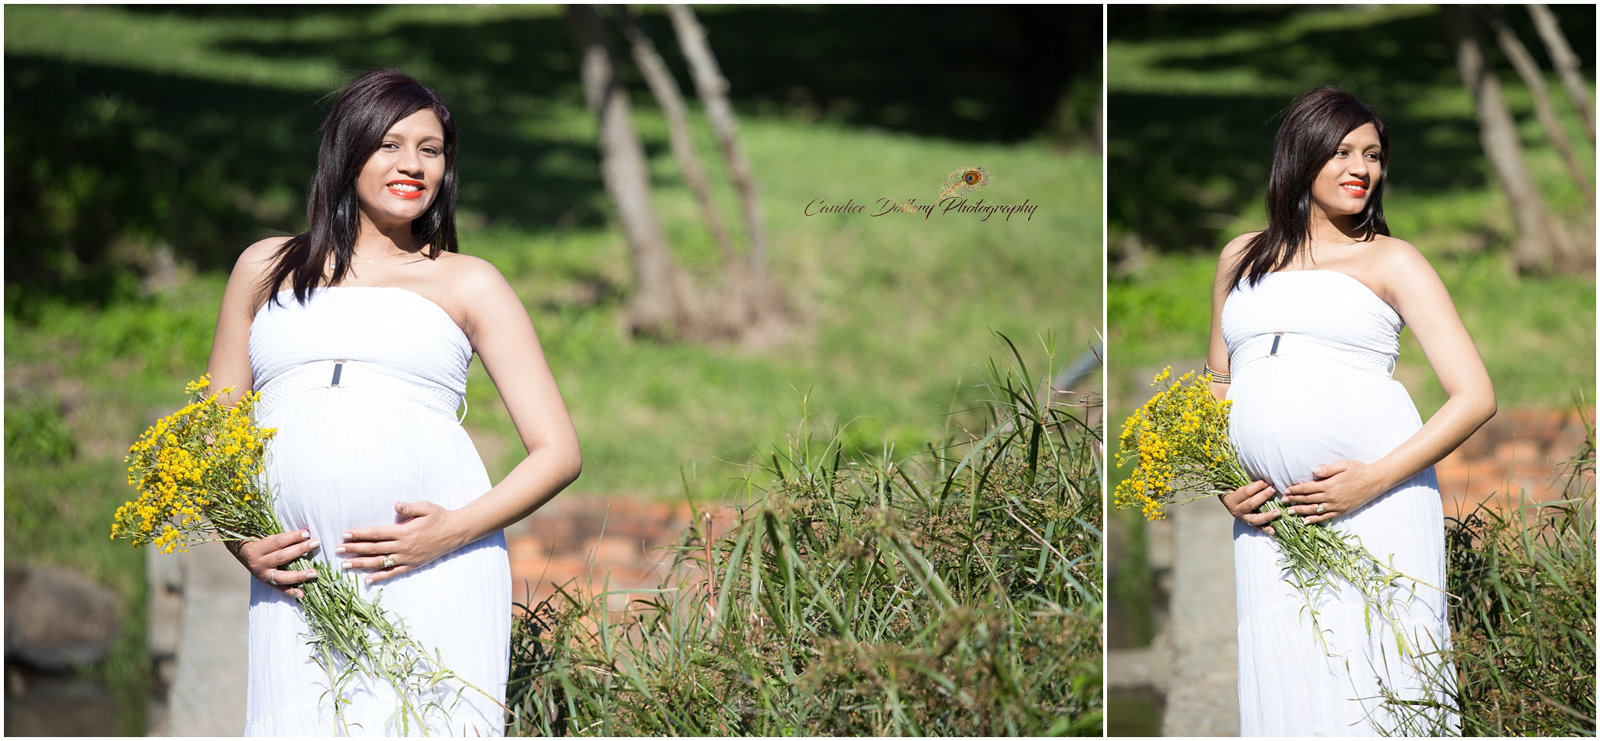 loris-pregnancy-candice-dollery-photography_2413